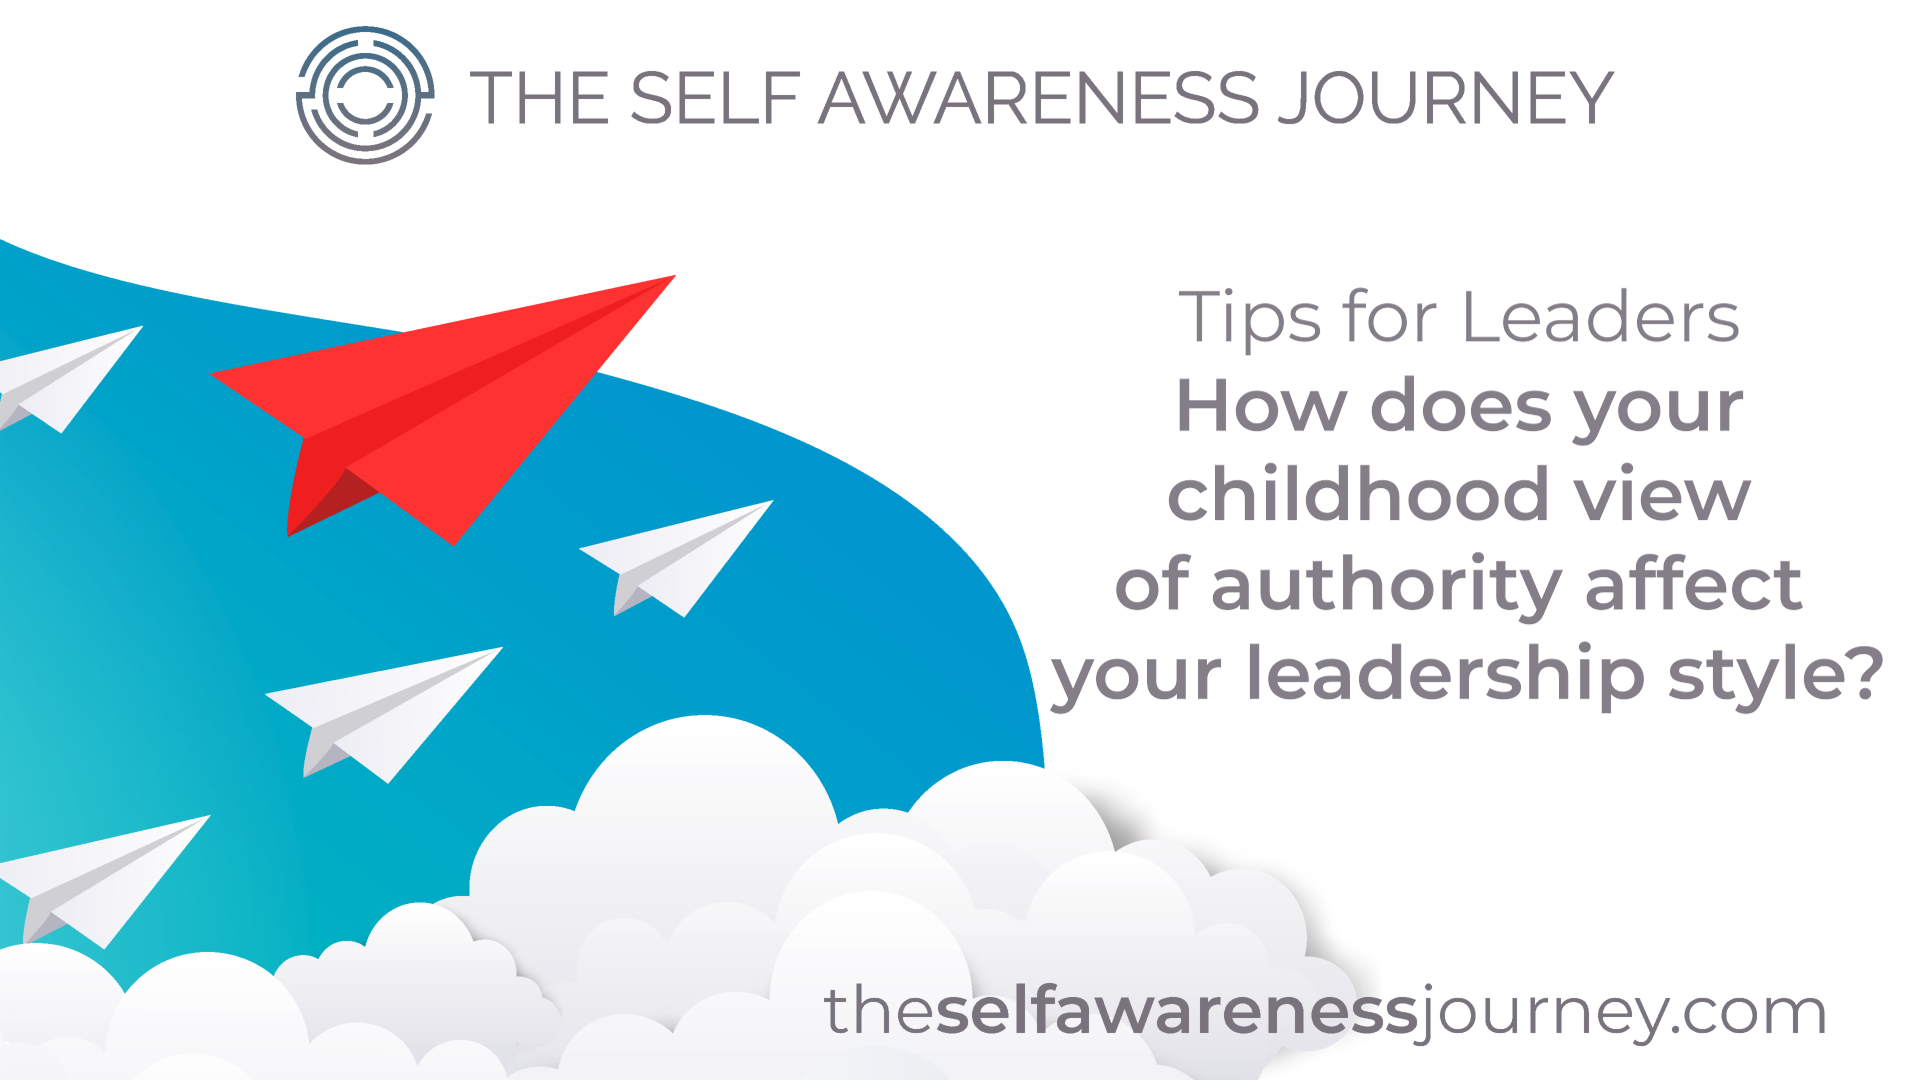 How Does your Childhood View of Authority Affect your Leadership Style?